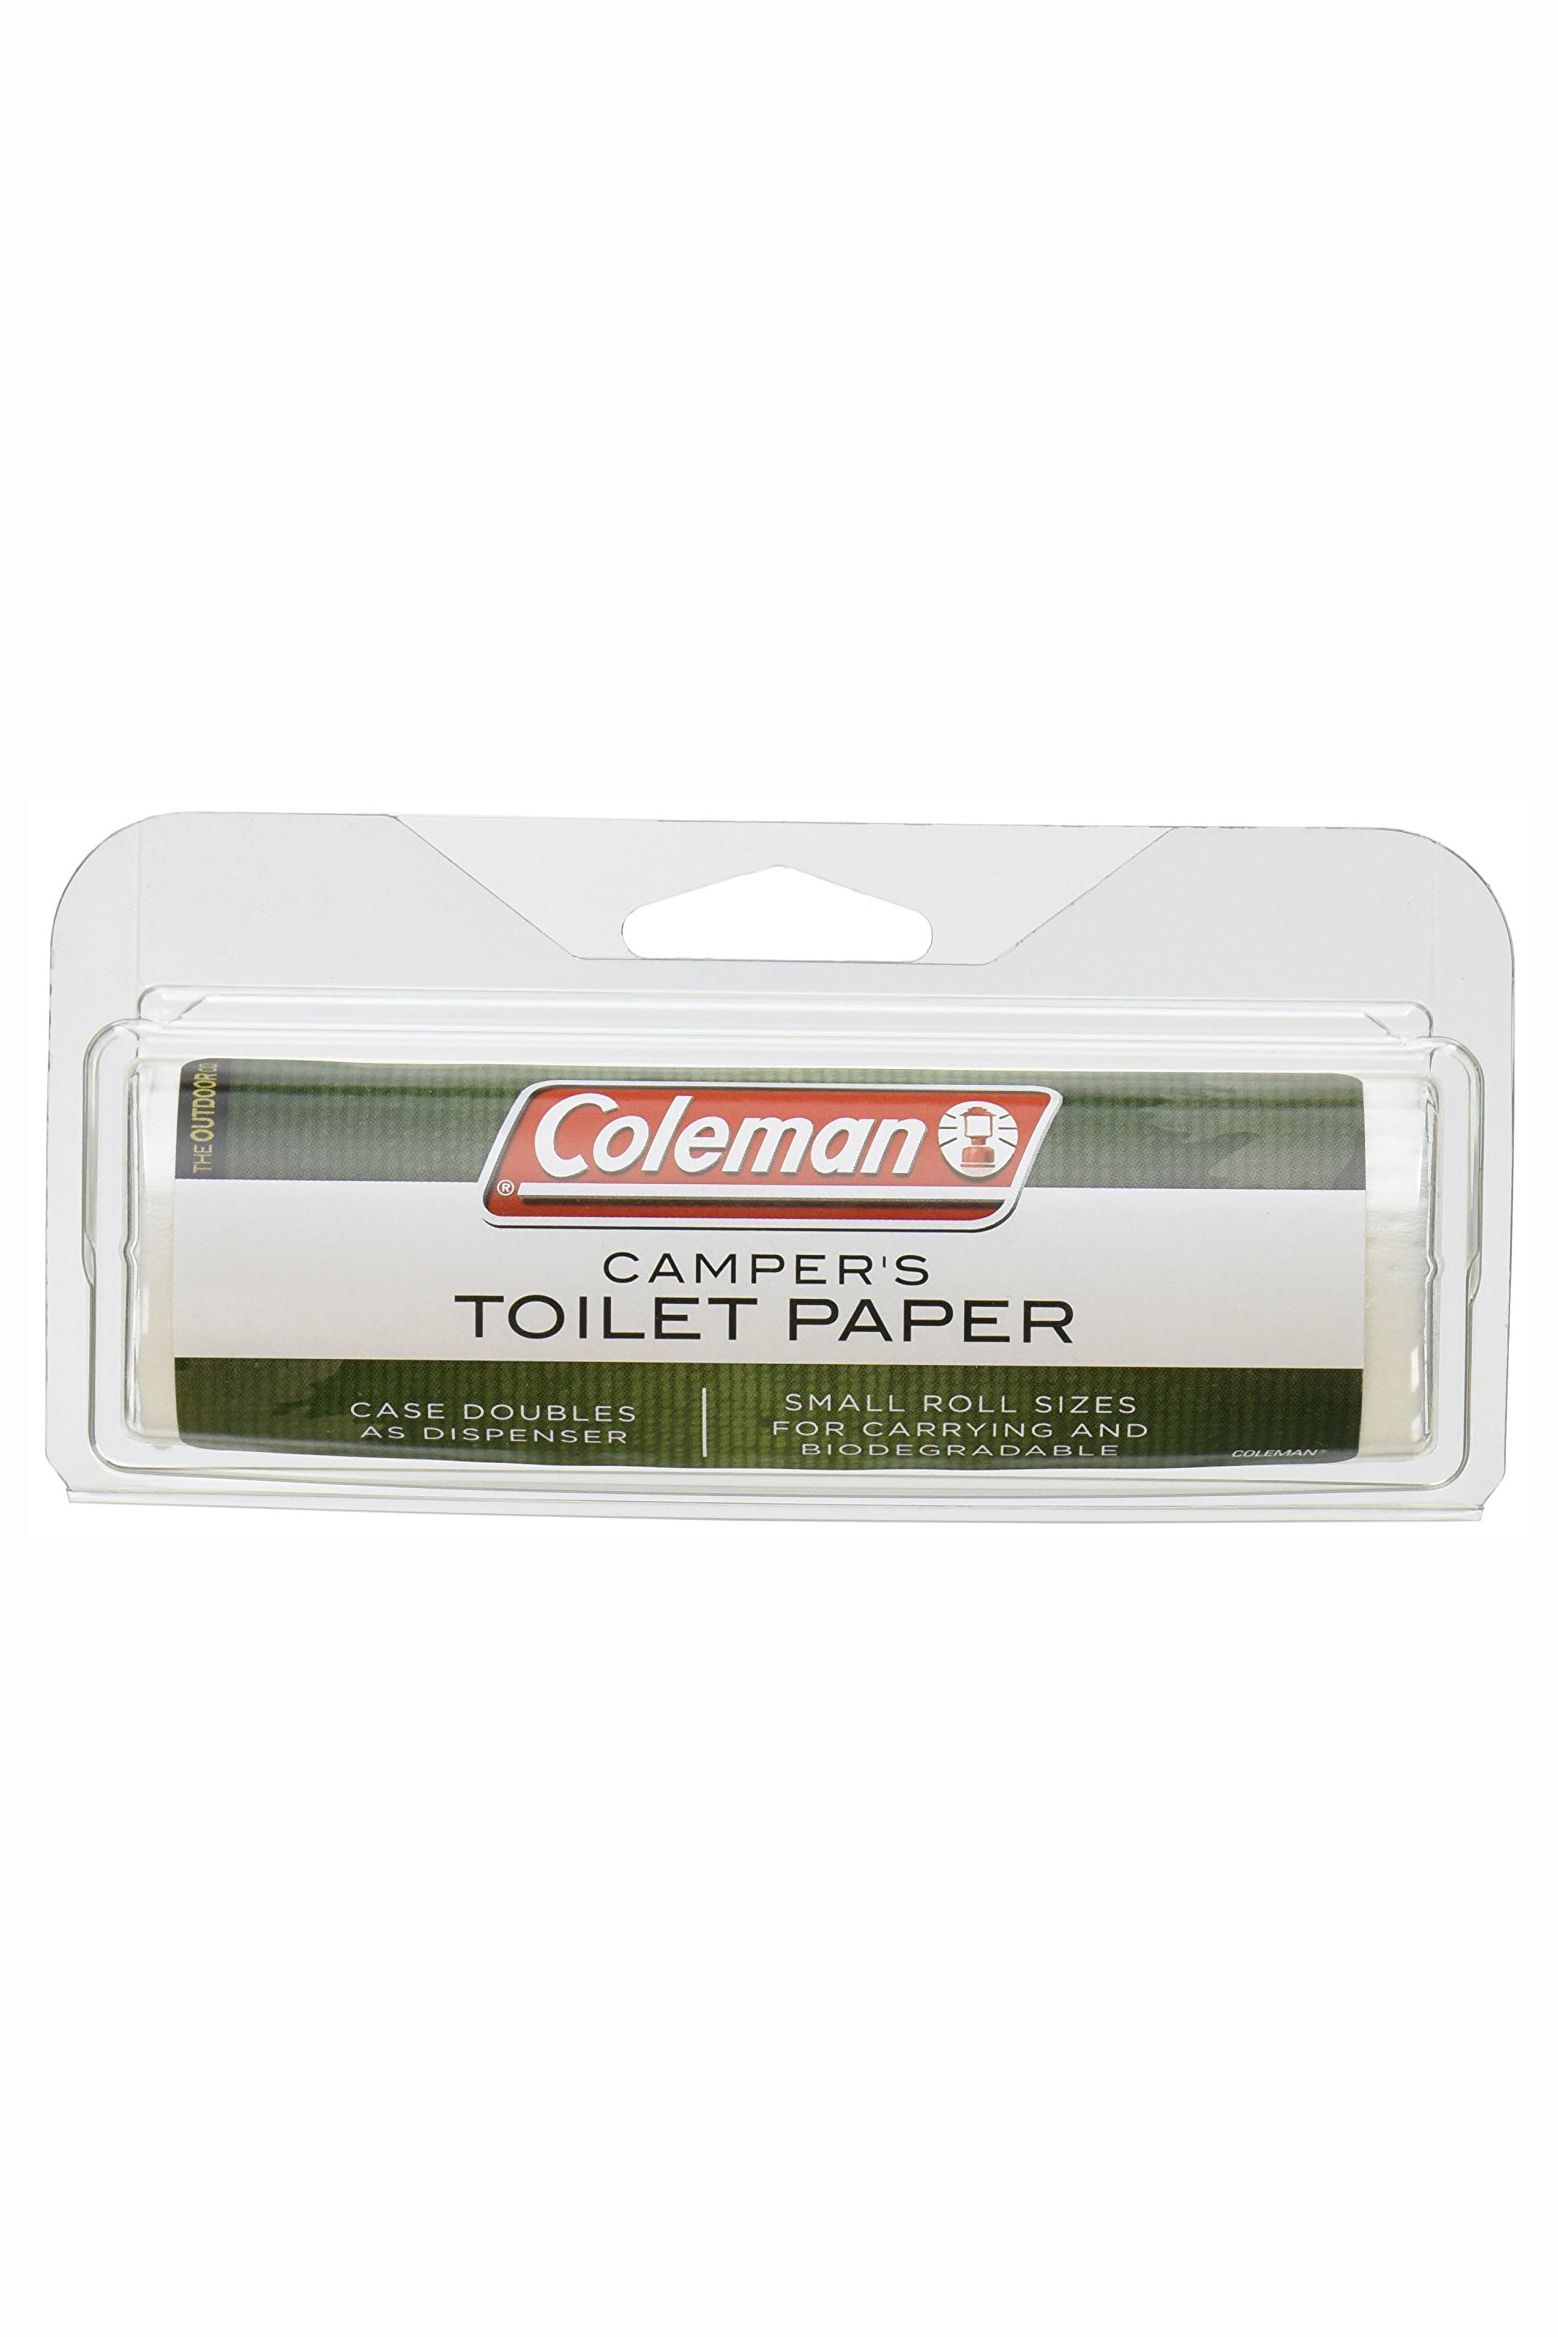 camping supplies - campers toilet paper